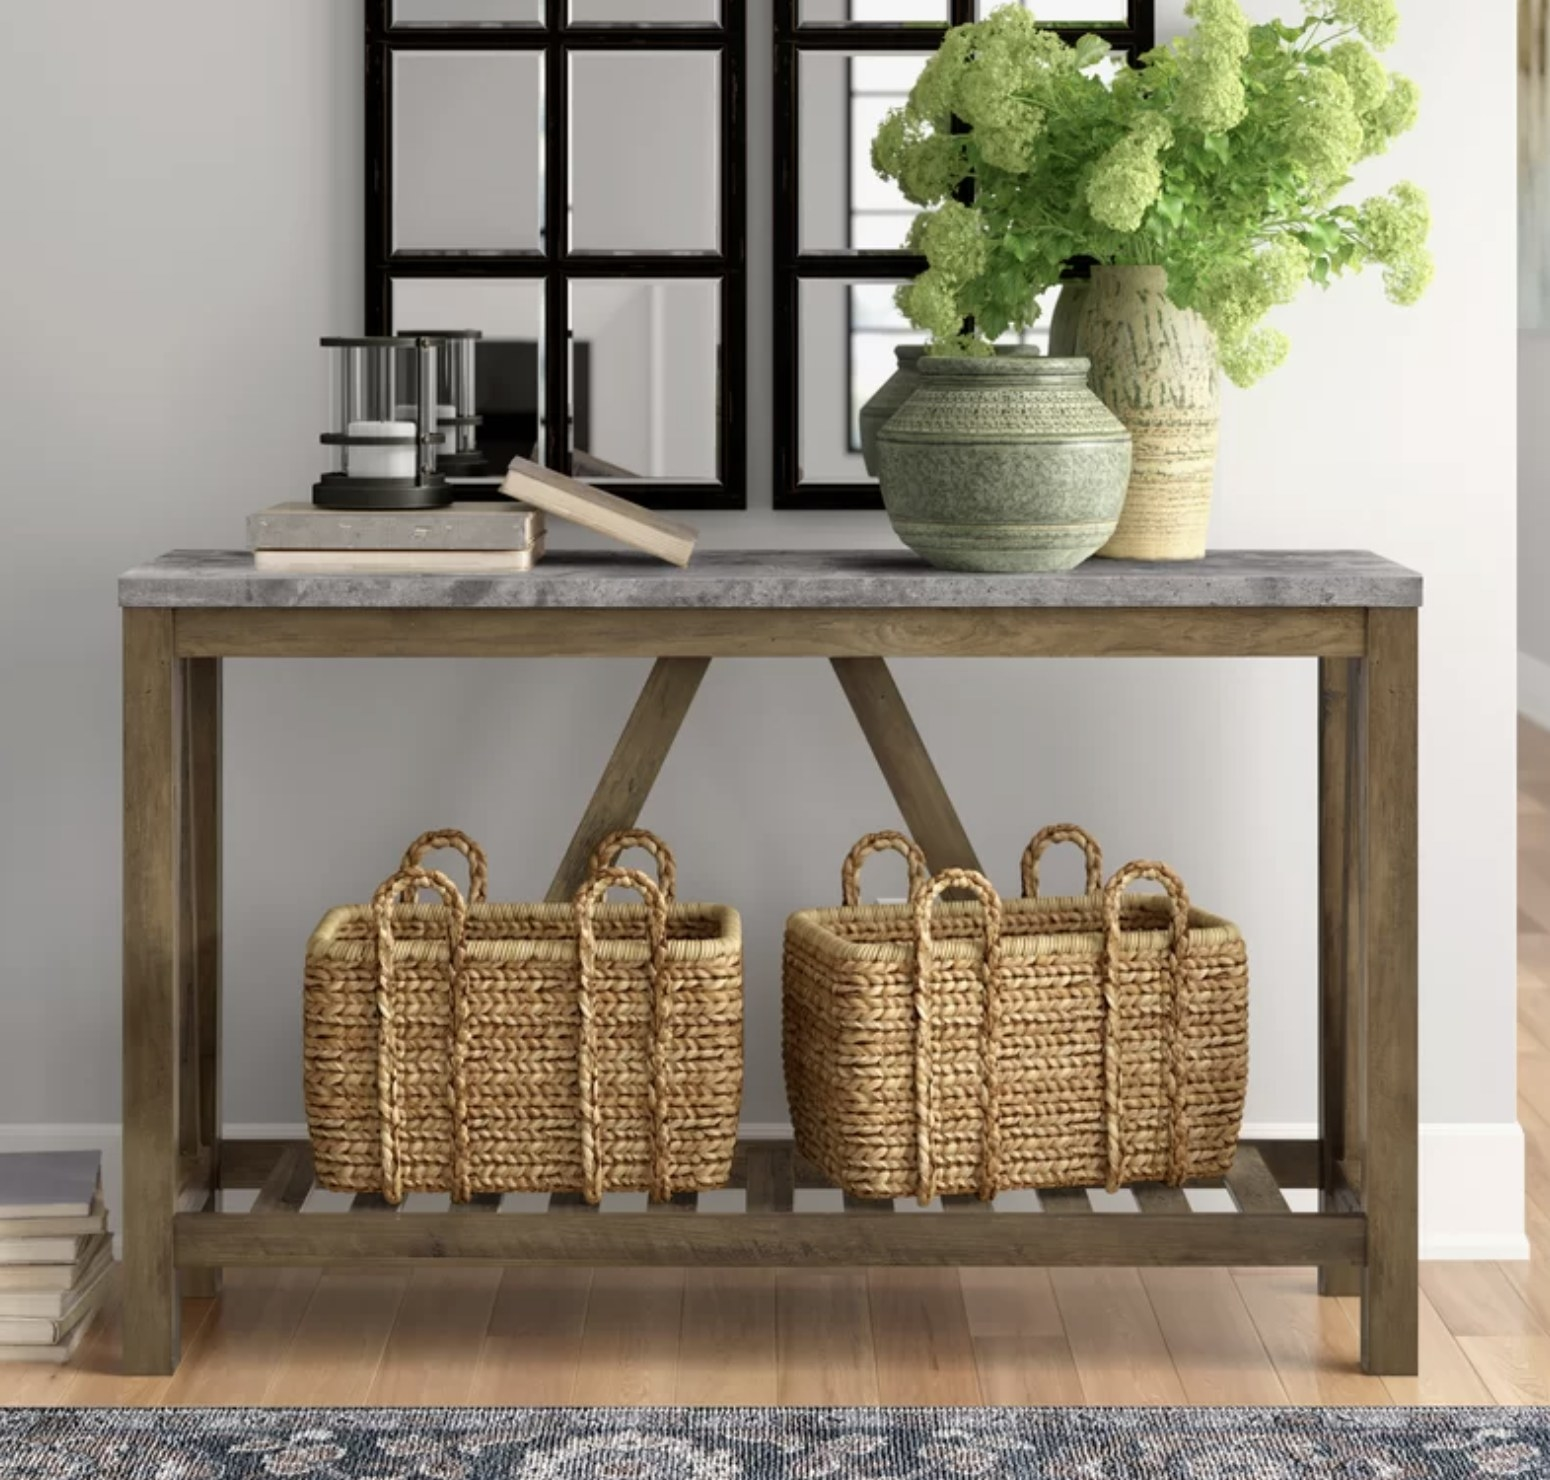 The entry way with a grey marble top and baskets on the bottom shelf